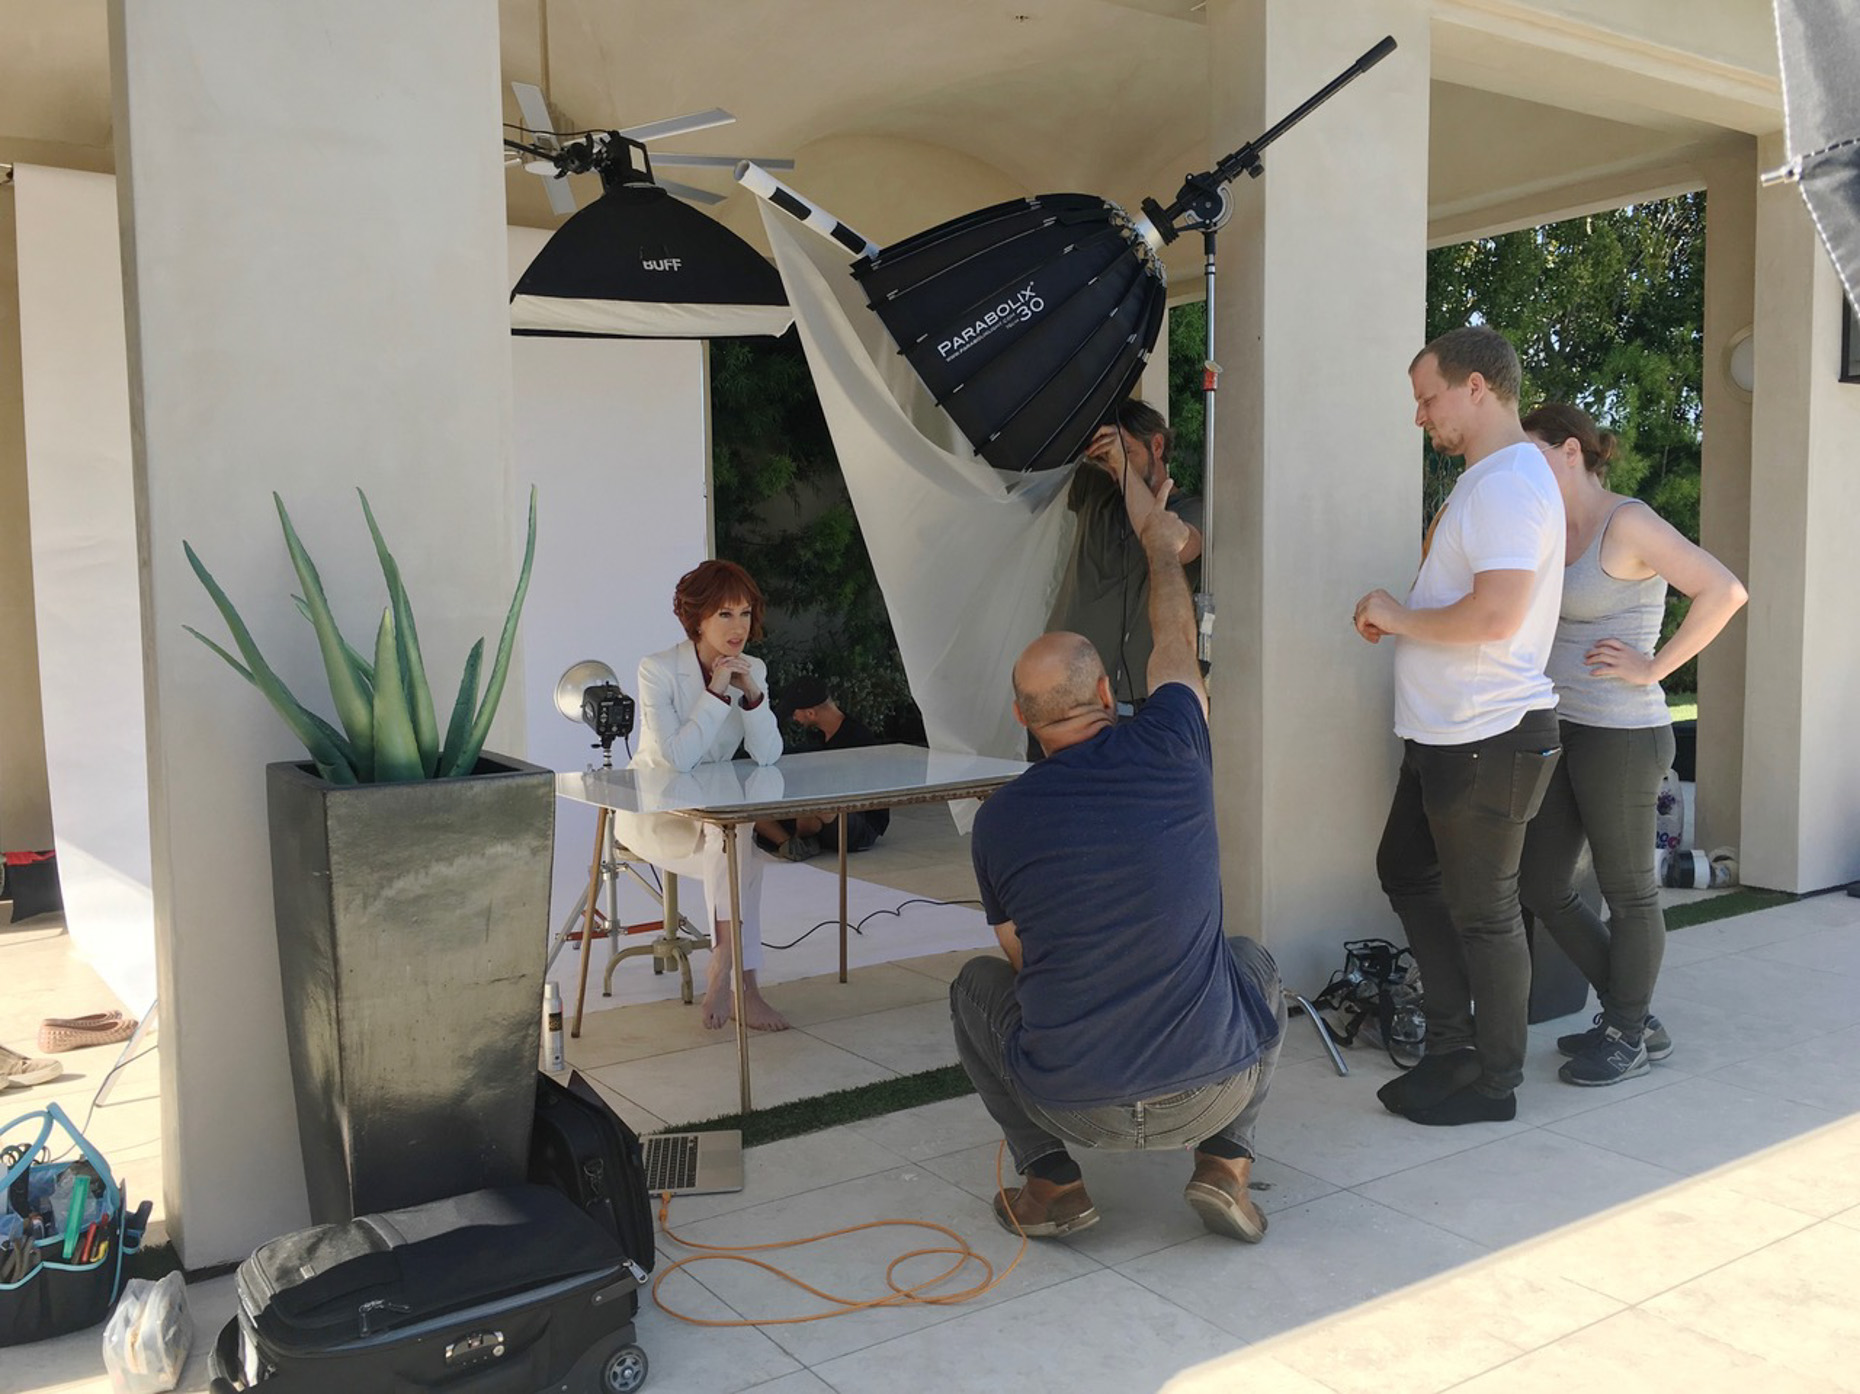 Kremer Johnson - Advertising Photographer Los Angeles - Behind The Scenes